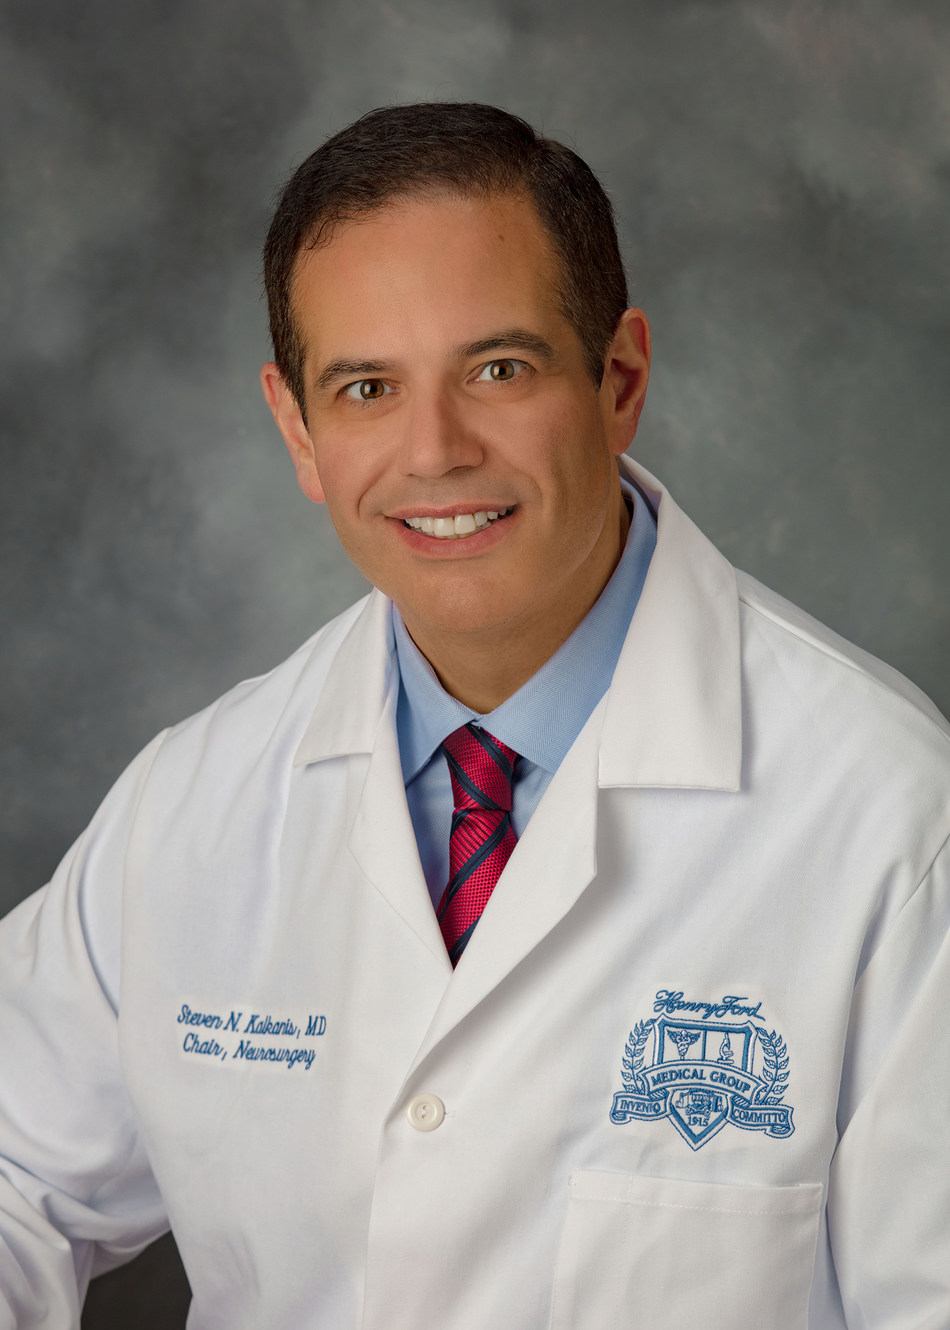 Steven Kalkanis, M.D., chairman of the Department of Neurosurgery at Henry Ford Health System and medical director of the Henry Ford Cancer Institute.